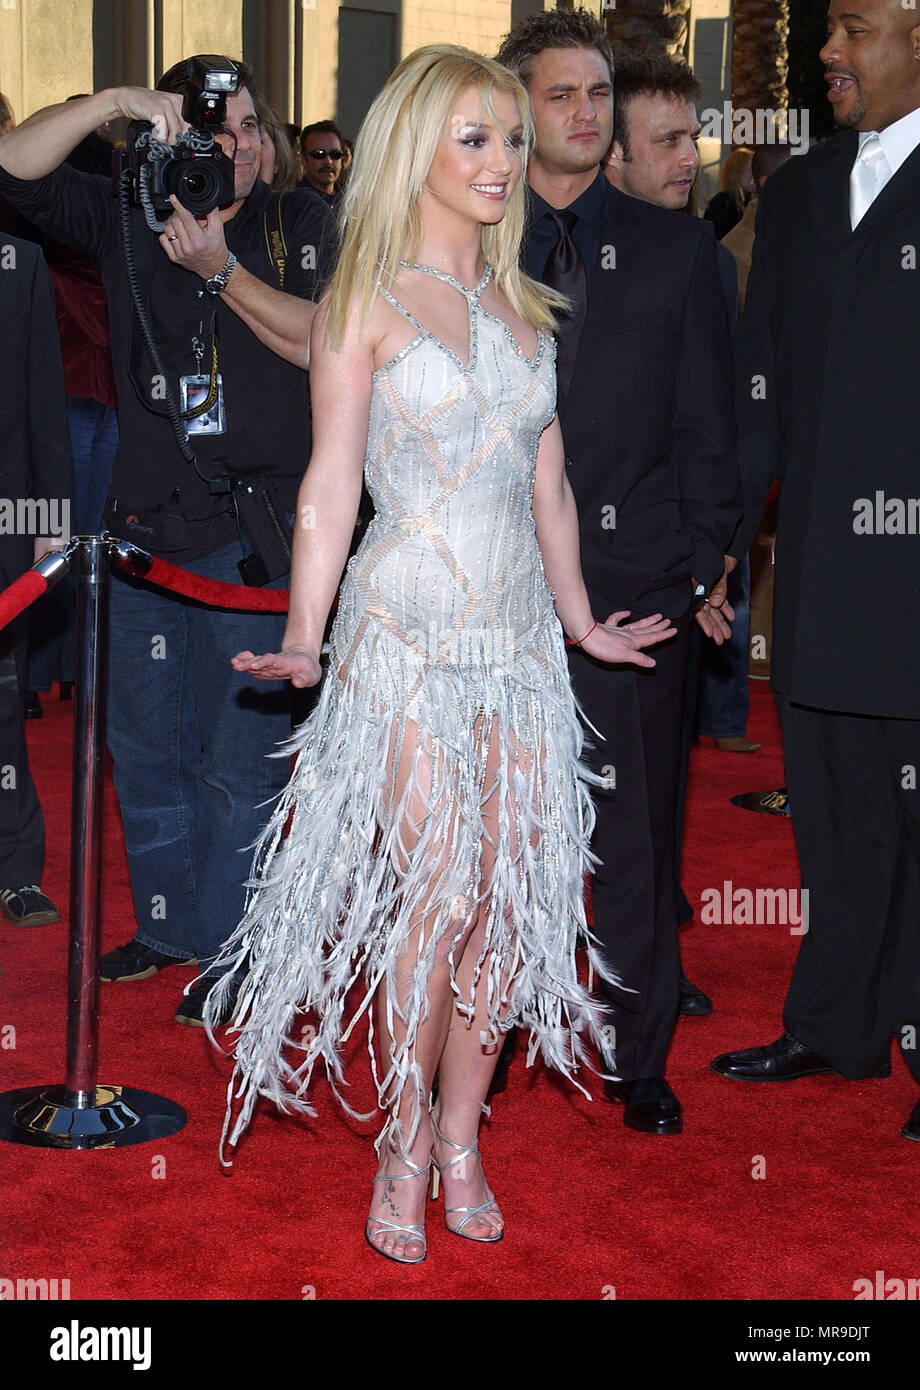 britney-spears-arriving-at-the-31th-annu